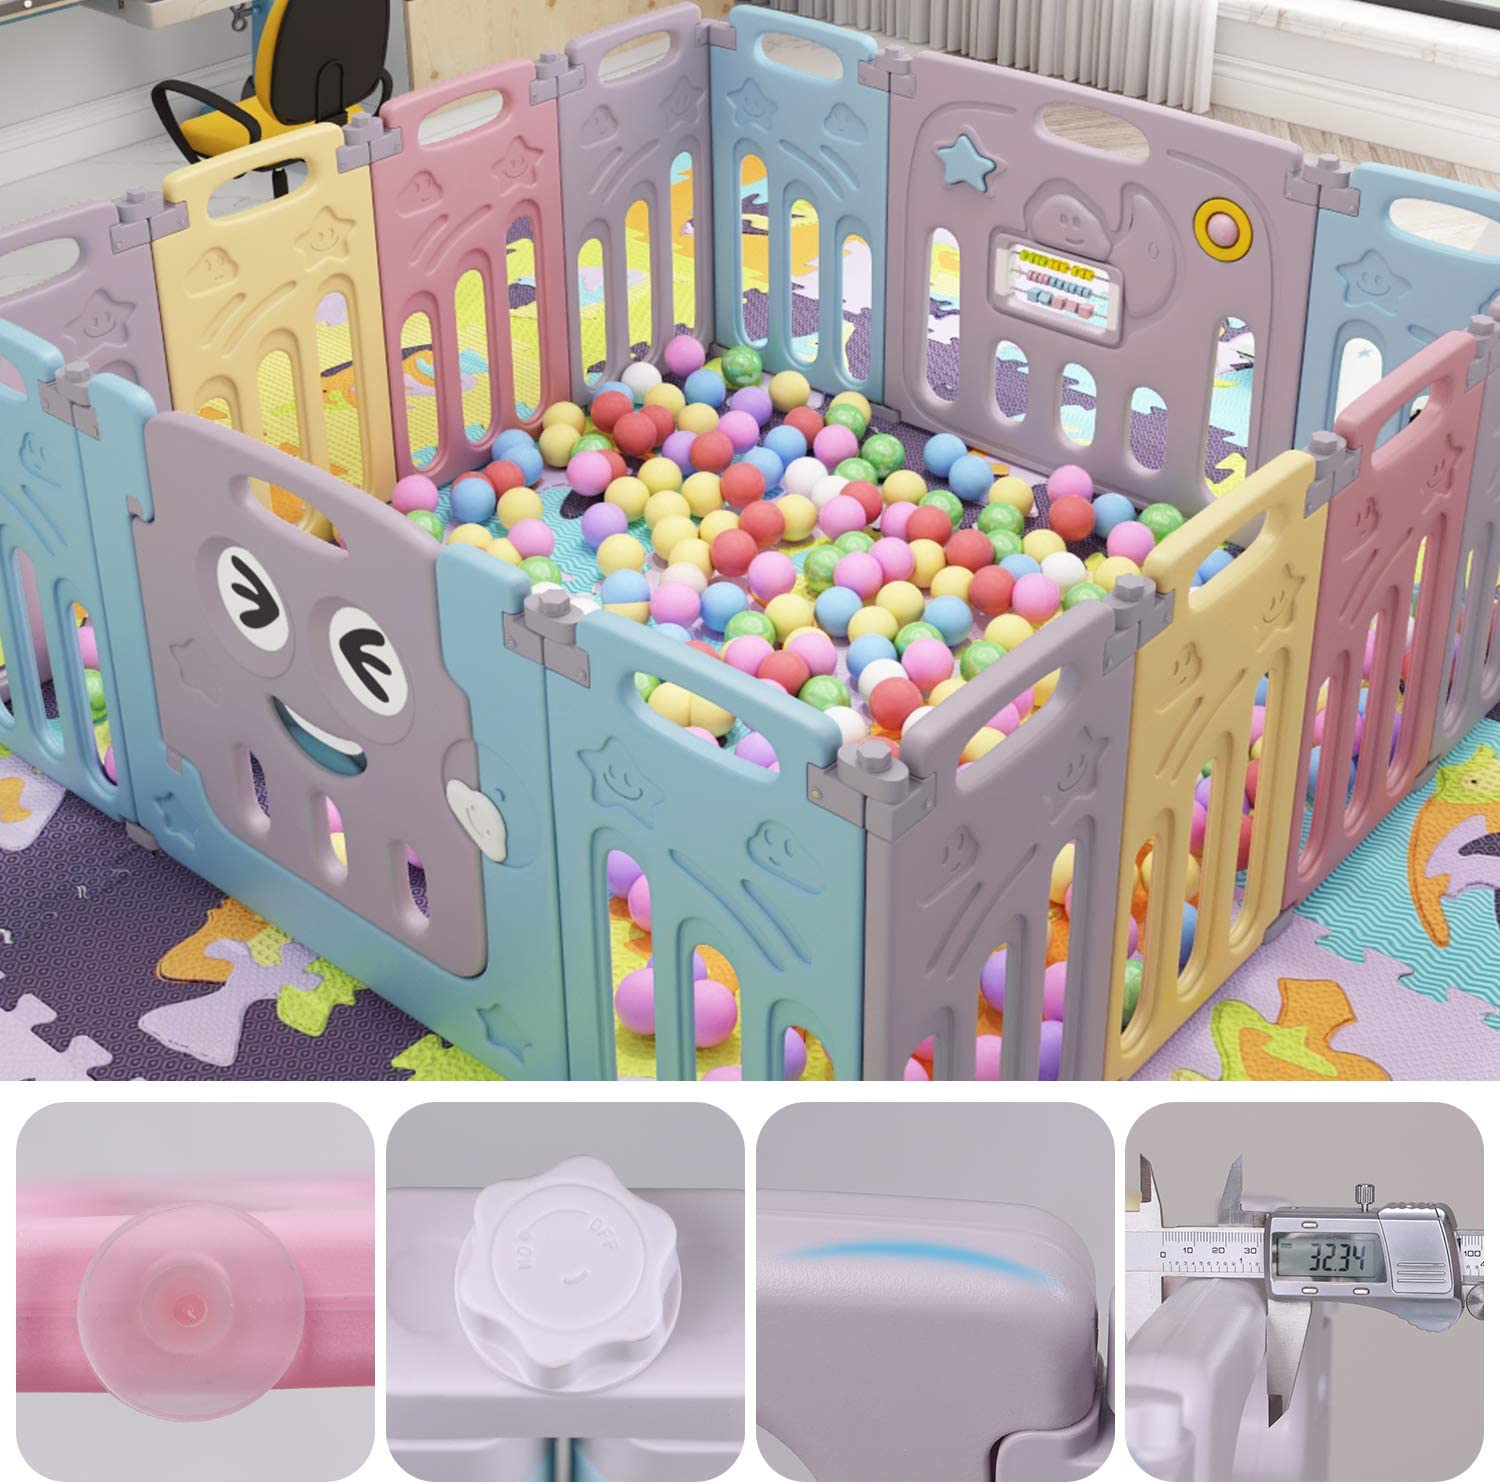 Baby Playpen Foldable Kids Activity Centre 14 Panel Safety Play Yard Baby Fence Home Indoor Outdoor for Children 10 Months~6 Years Old